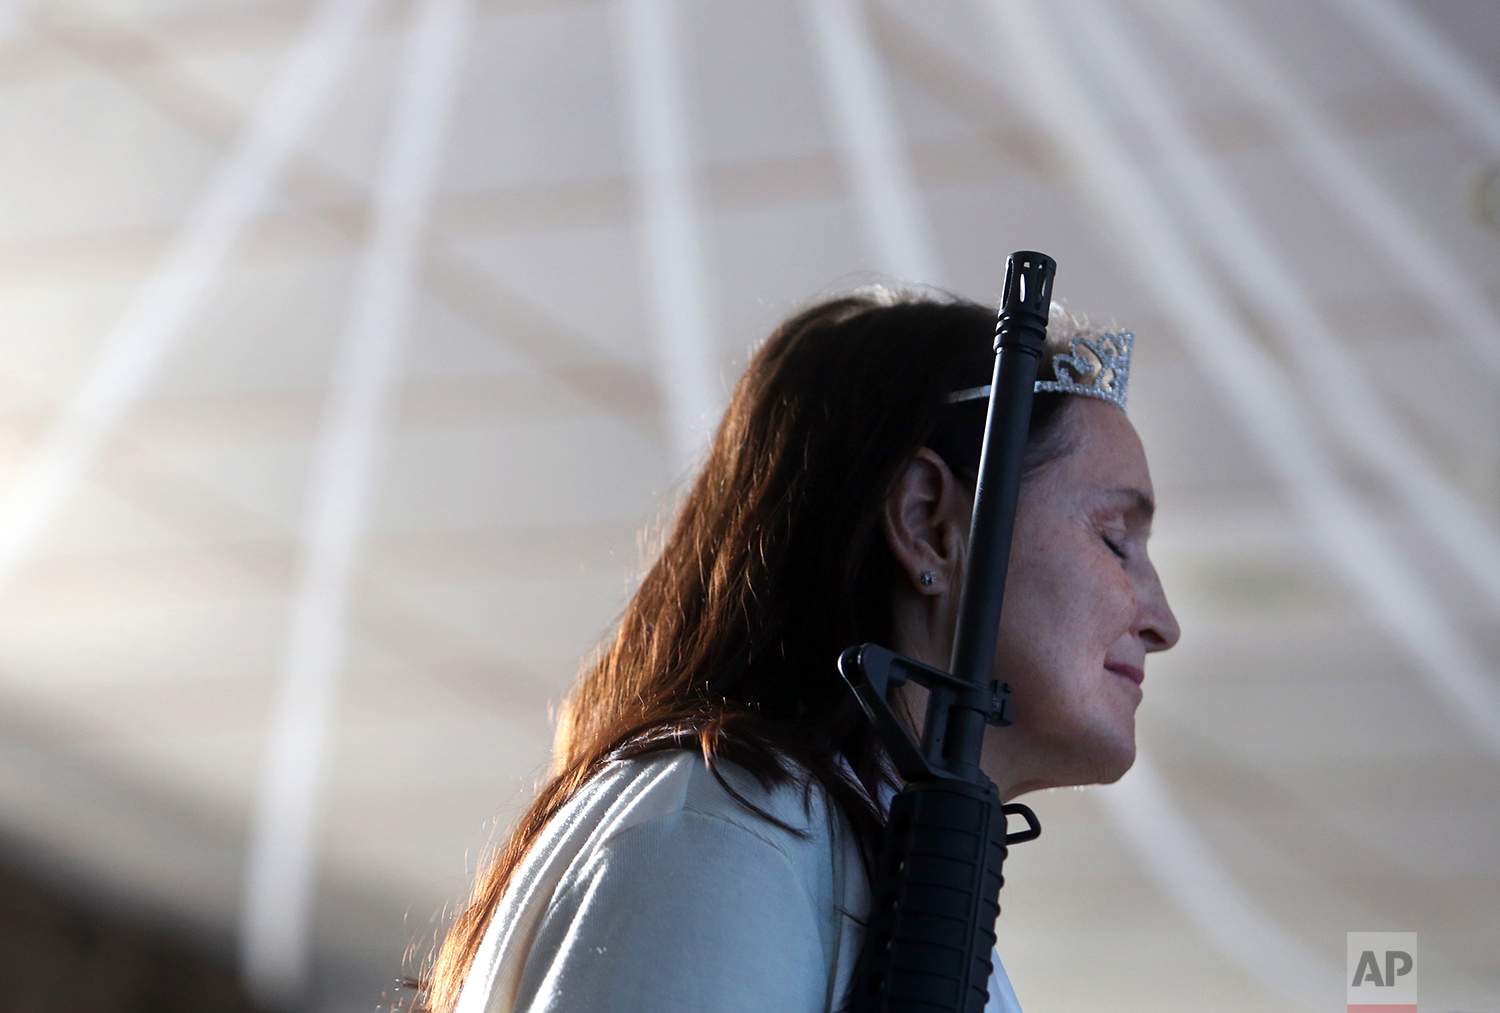 A standing woman closes her eyes as she holds an unloaded weapon during services at the World Peace and Unification Sanctuary, Wednesday Feb. 28, 2018, in Newfoundland, Pa. Worshippers clutching AR-15 rifles participated in a commitment ceremony at the Pennsylvania-based church. (AP Photo/Jacqueline Larma)